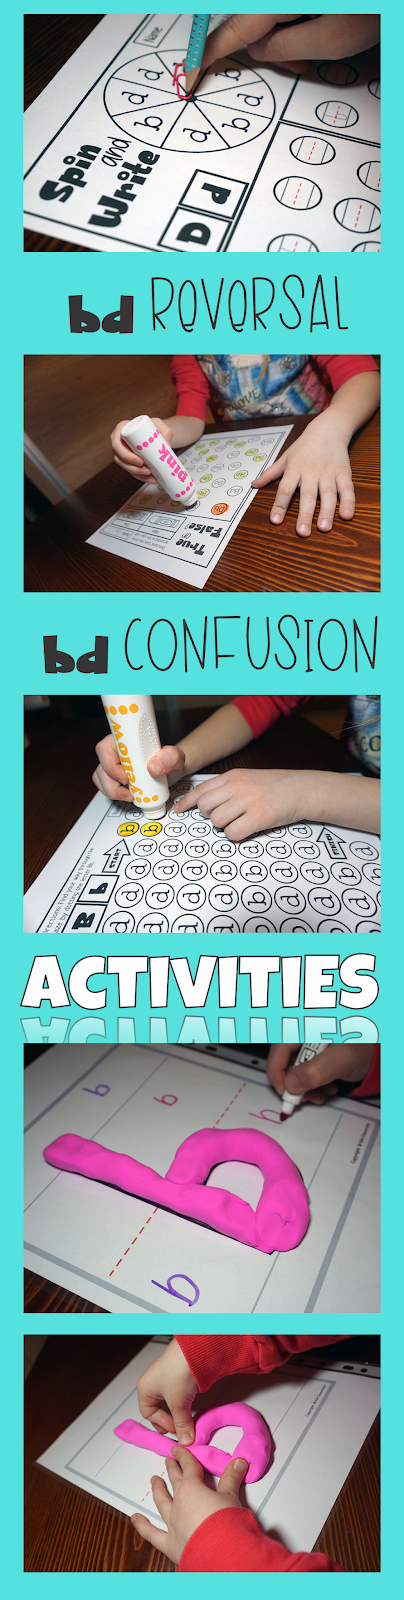 https://www.teacherspayteachers.com/Product/b-and-d-Reversal-Worksheets-and-Activities-3556853